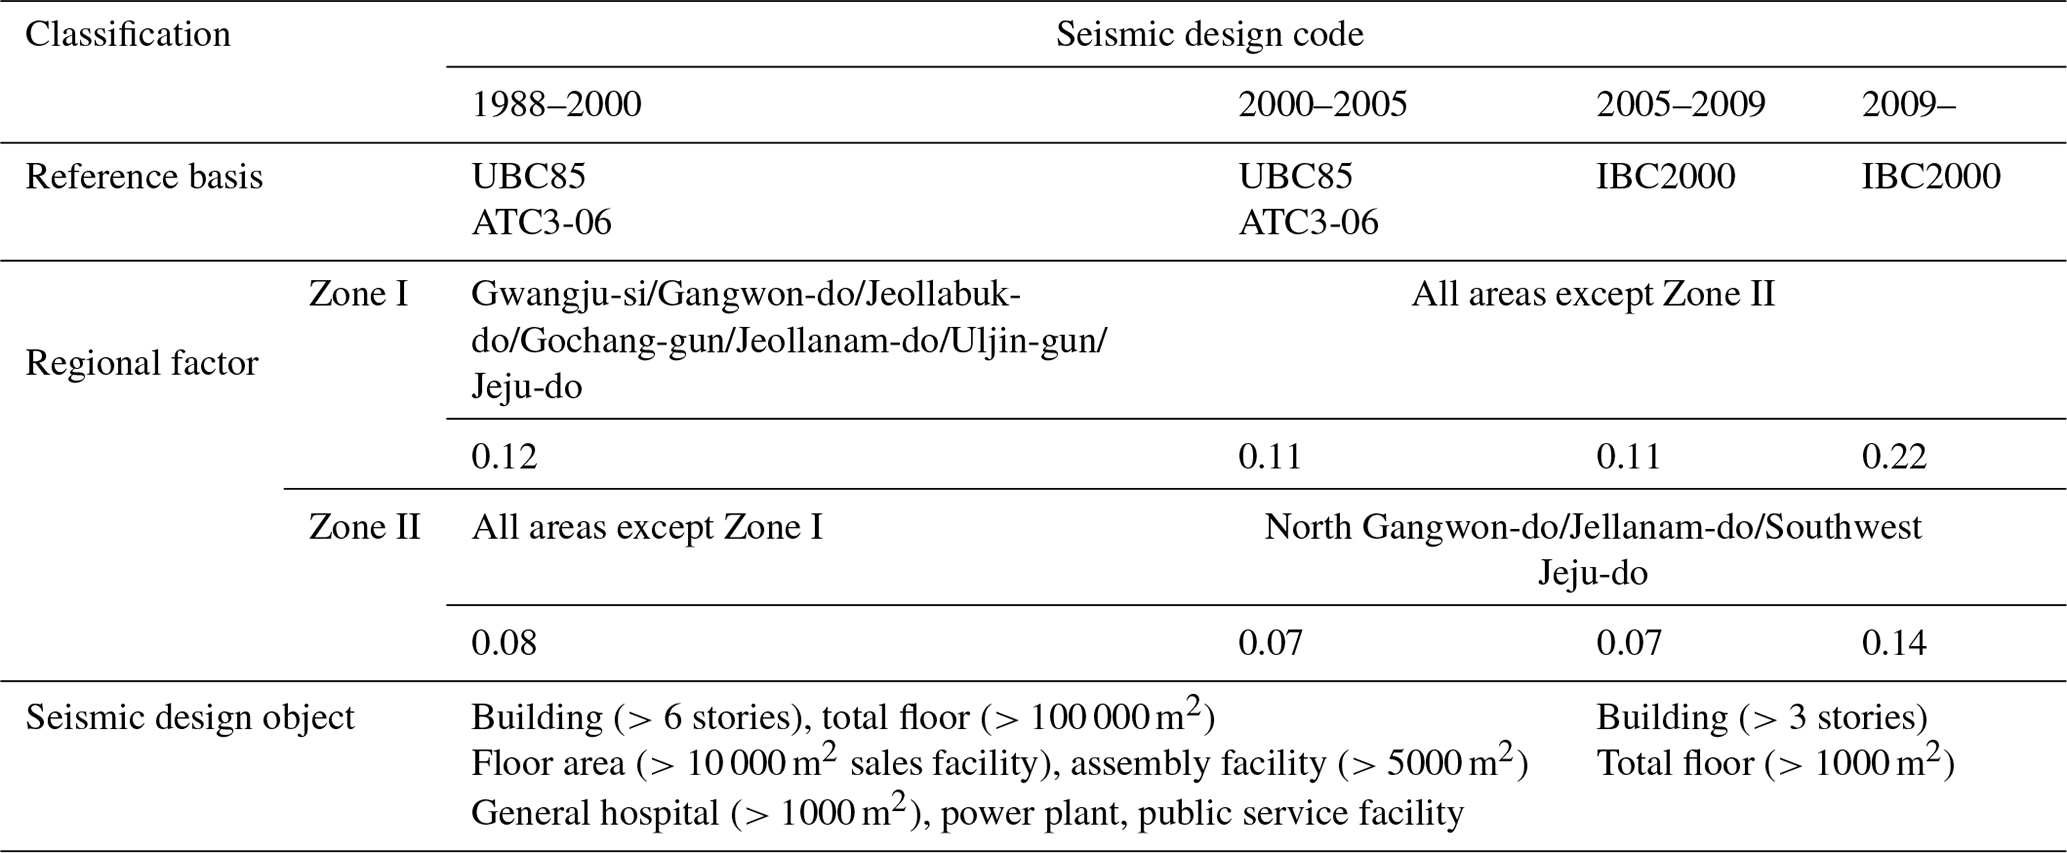 NHESS - Loss assessment of building and contents damage from the